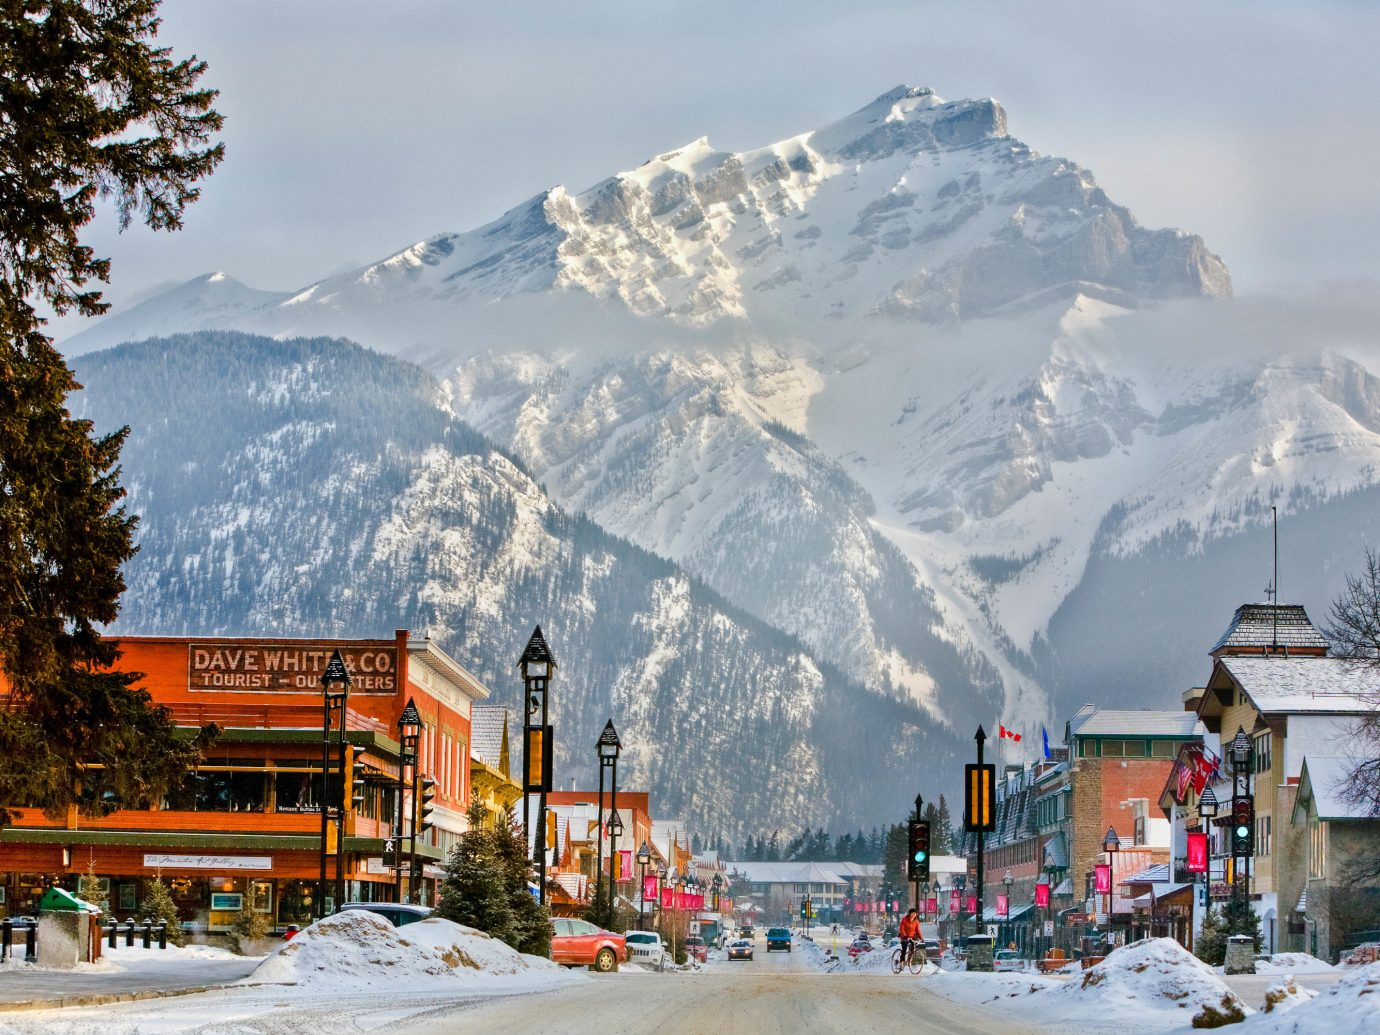 Canada Montreal Toronto Trip Ideas snow outdoor mountain sky Winter mountain range mountainous landforms Town mountain village alps Nature tree covered hill station tourist attraction cloud mount scenery City freezing tourism glacial landform Village landscape house slope road